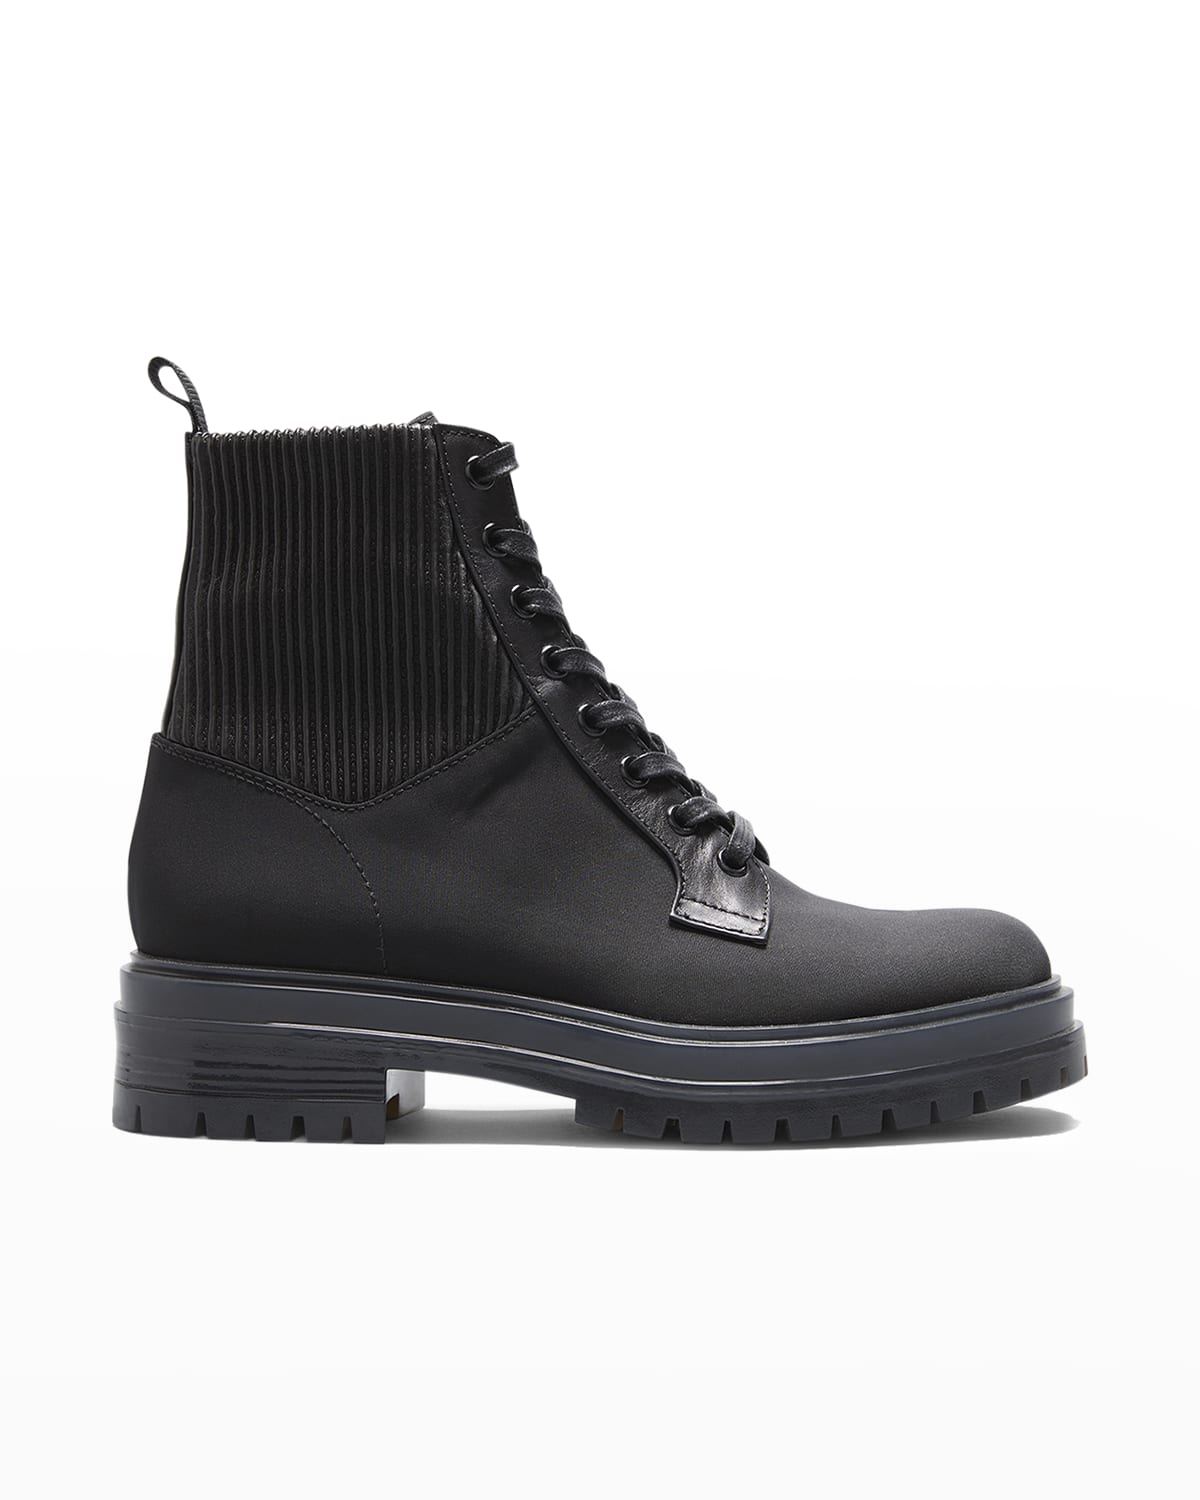 Martis Nylon/Leather Lace-Up Booties